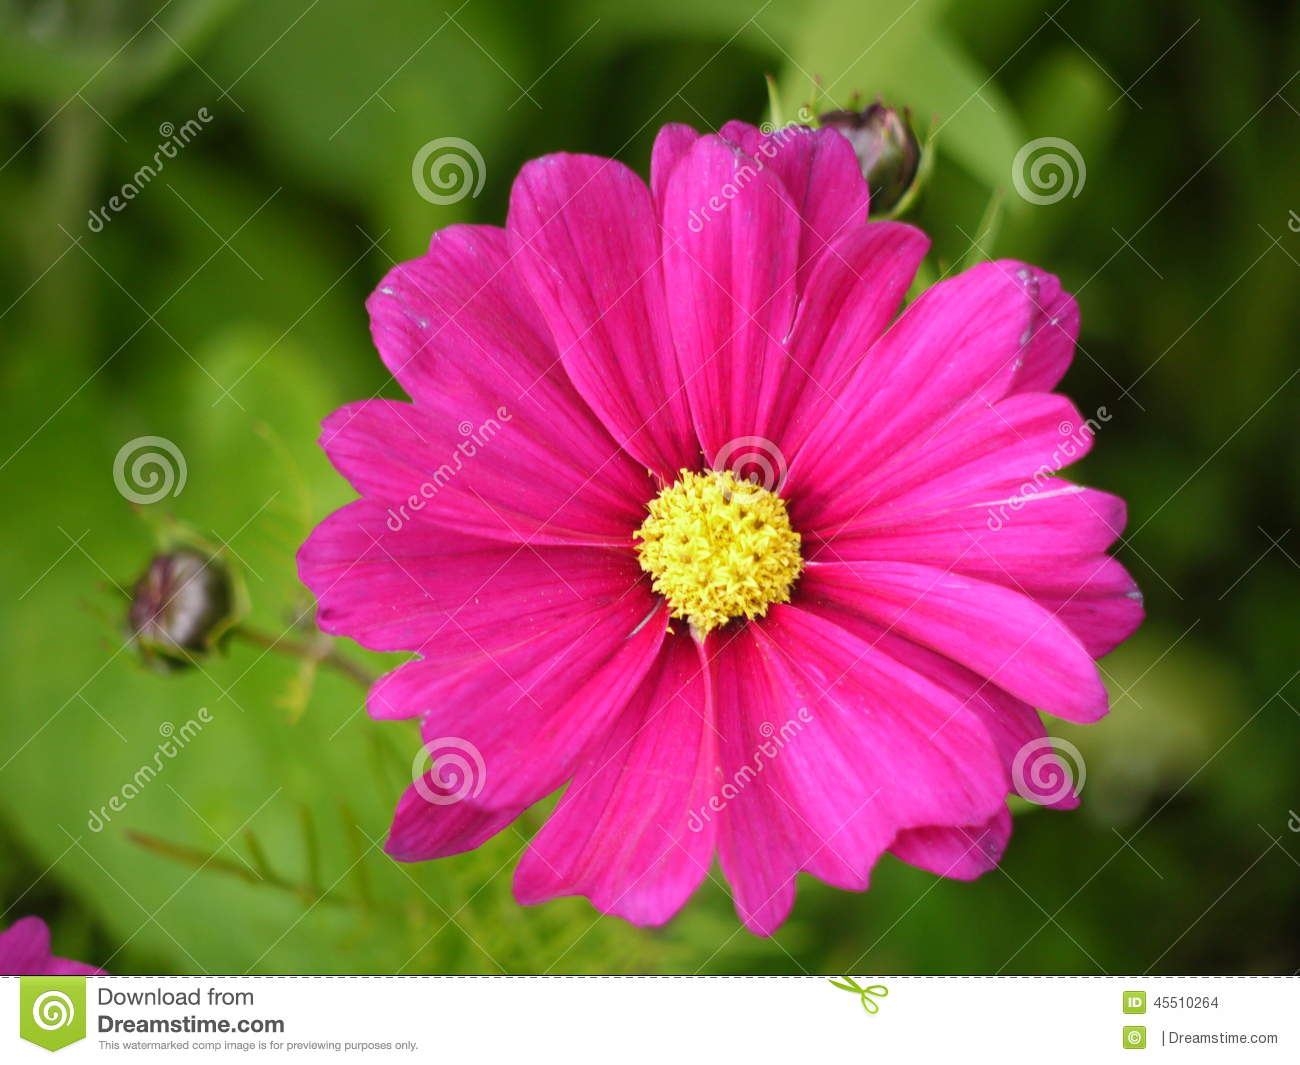 Bright pink cosmos flower stock photo image of flowers 45510264 download bright pink cosmos flower stock photo image of flowers 45510264 mightylinksfo